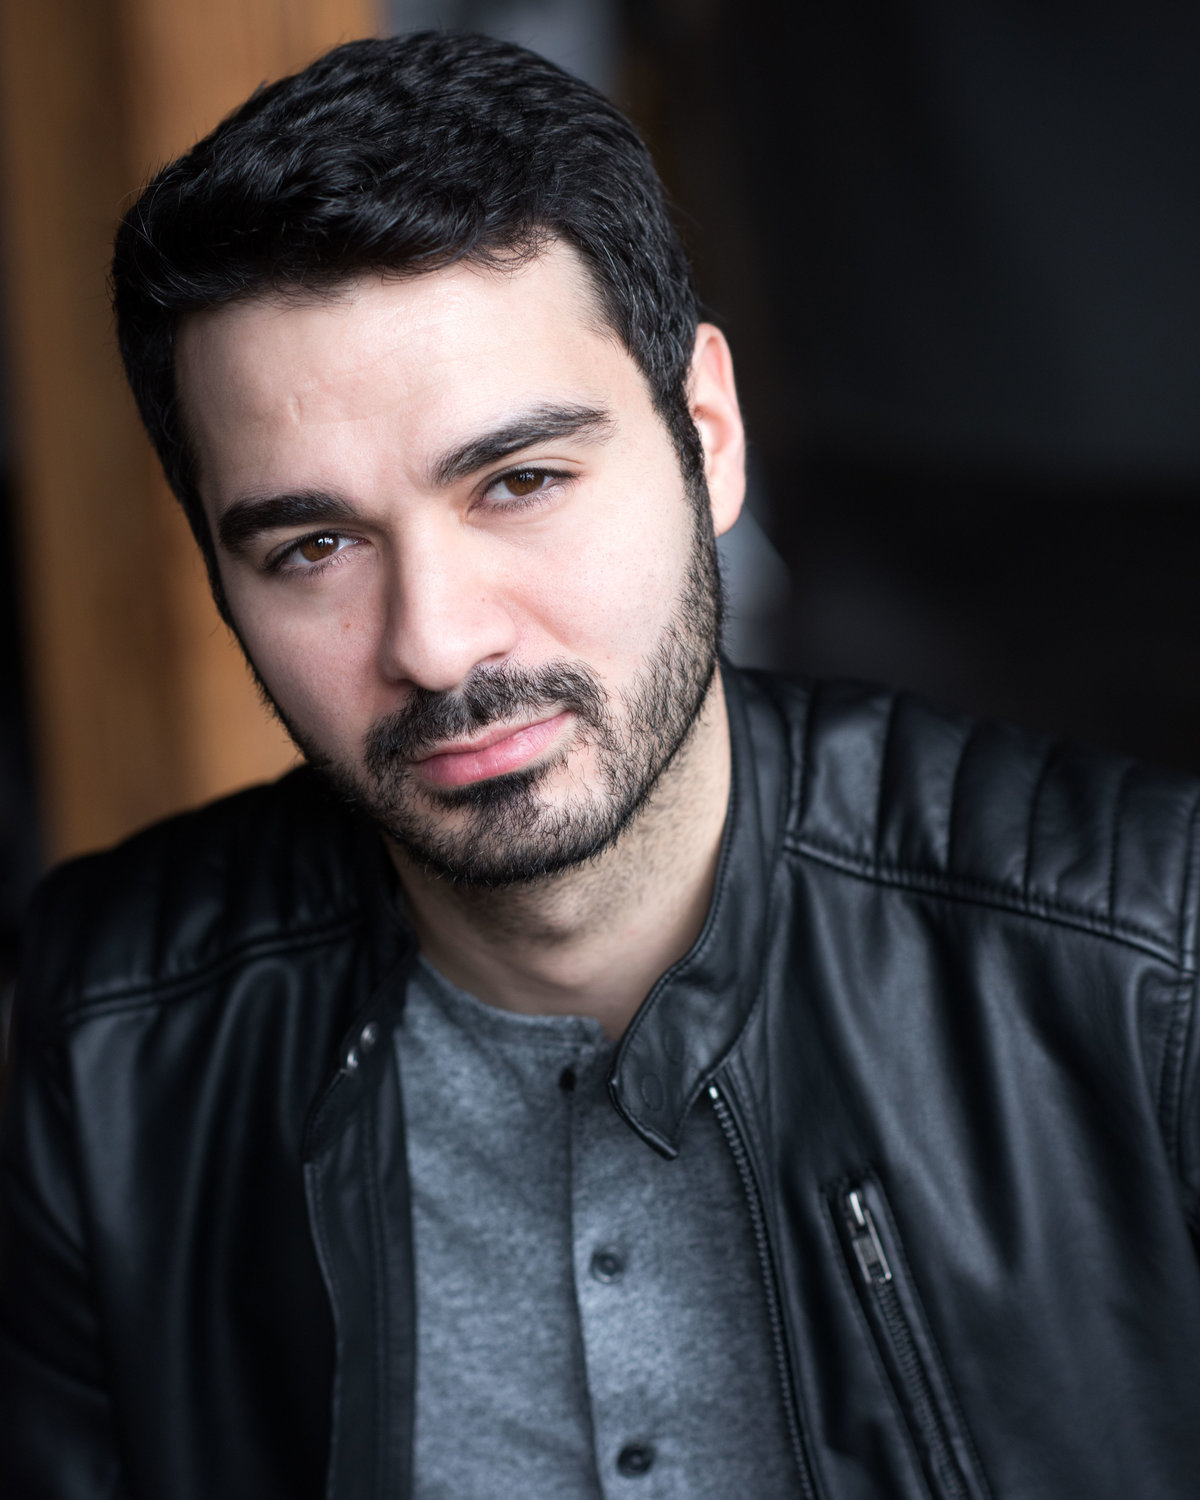 Chicago headshot, male, facial hair and leather jacket.